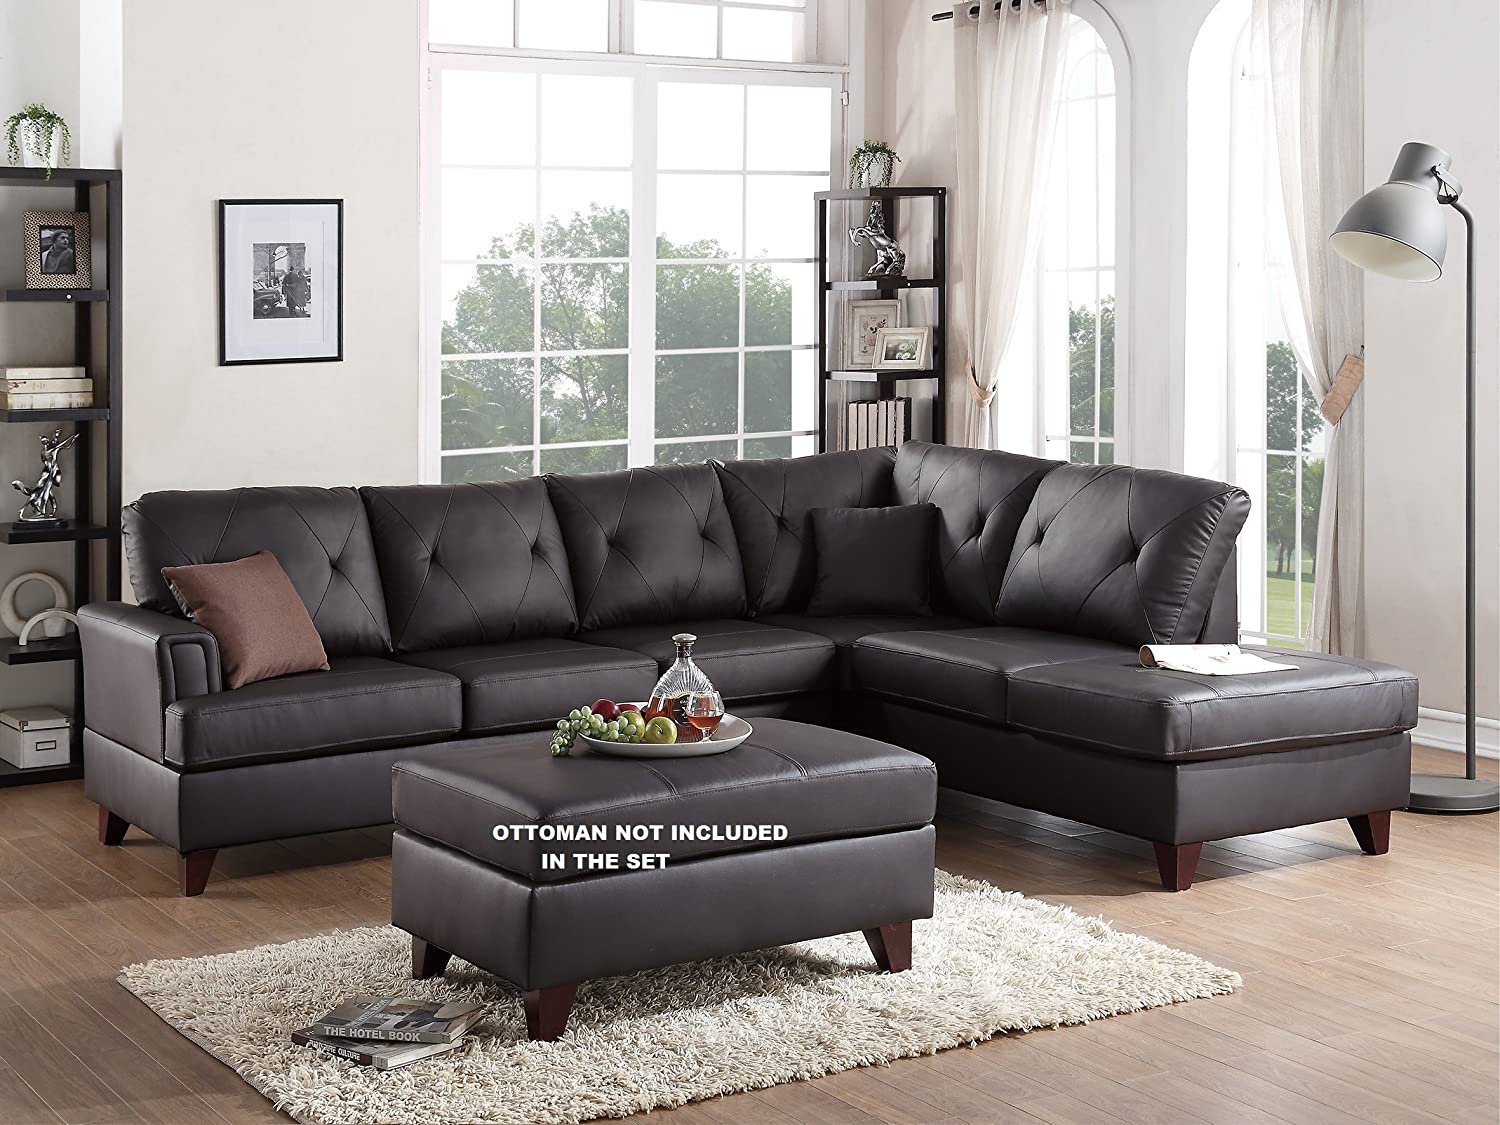 Tremendous Amazon Com Millford 2 Pieces Sectional Sofa Set Upholstered Pdpeps Interior Chair Design Pdpepsorg